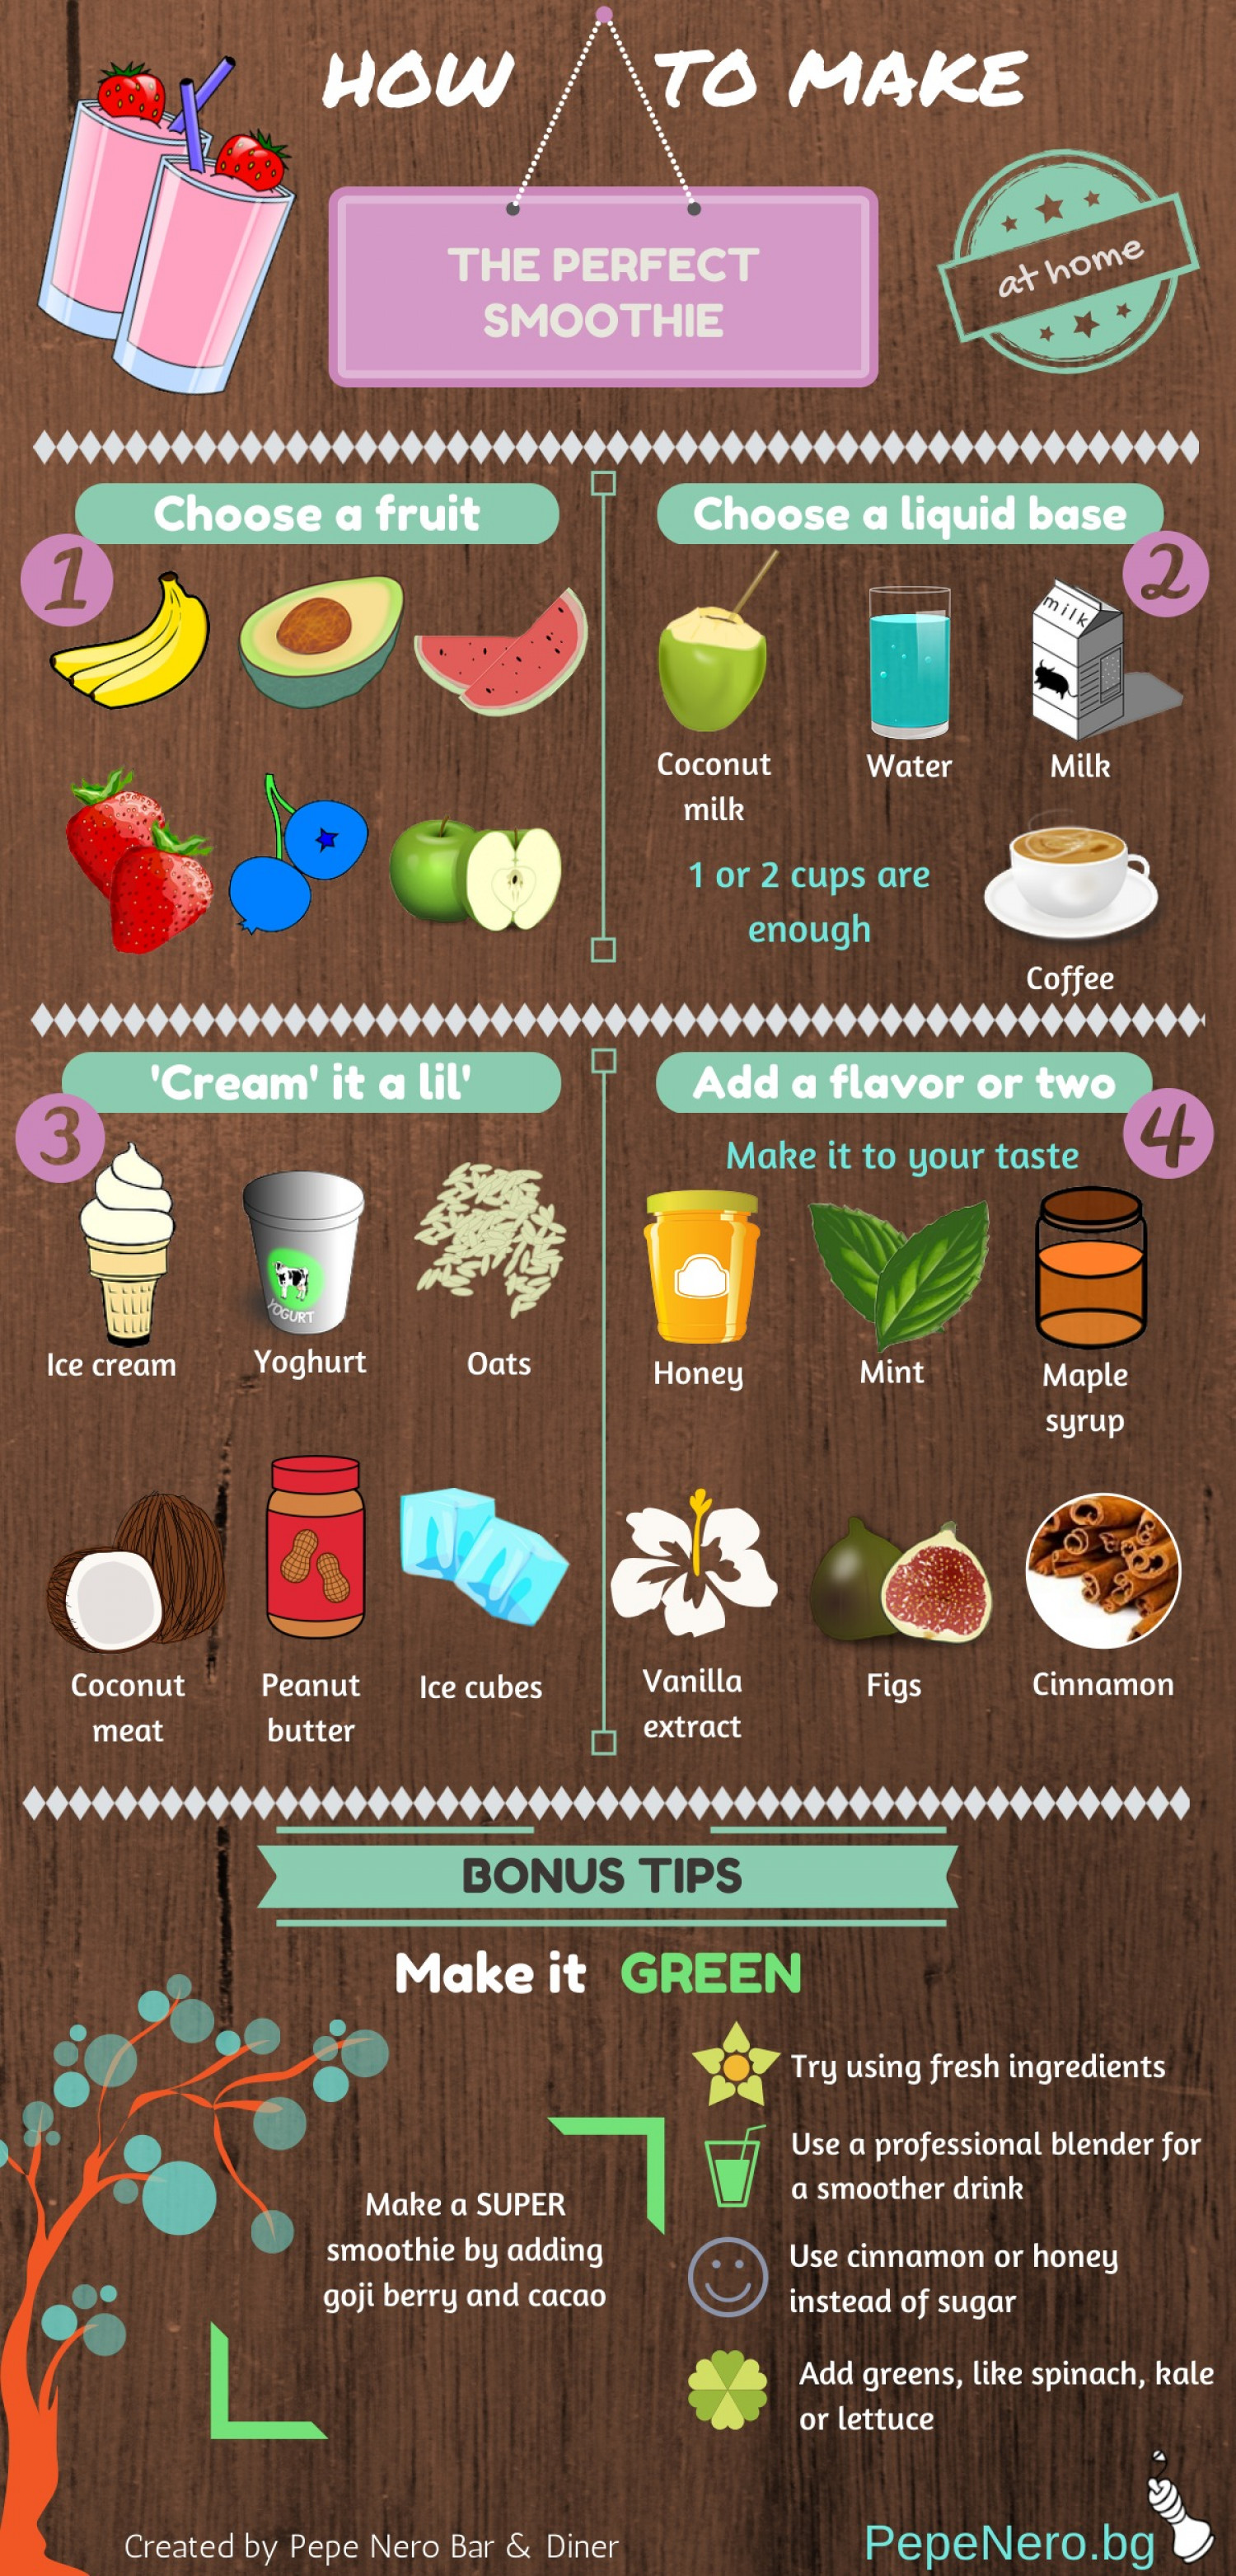 How To Make The Perfect Smoothie At Home Infographic